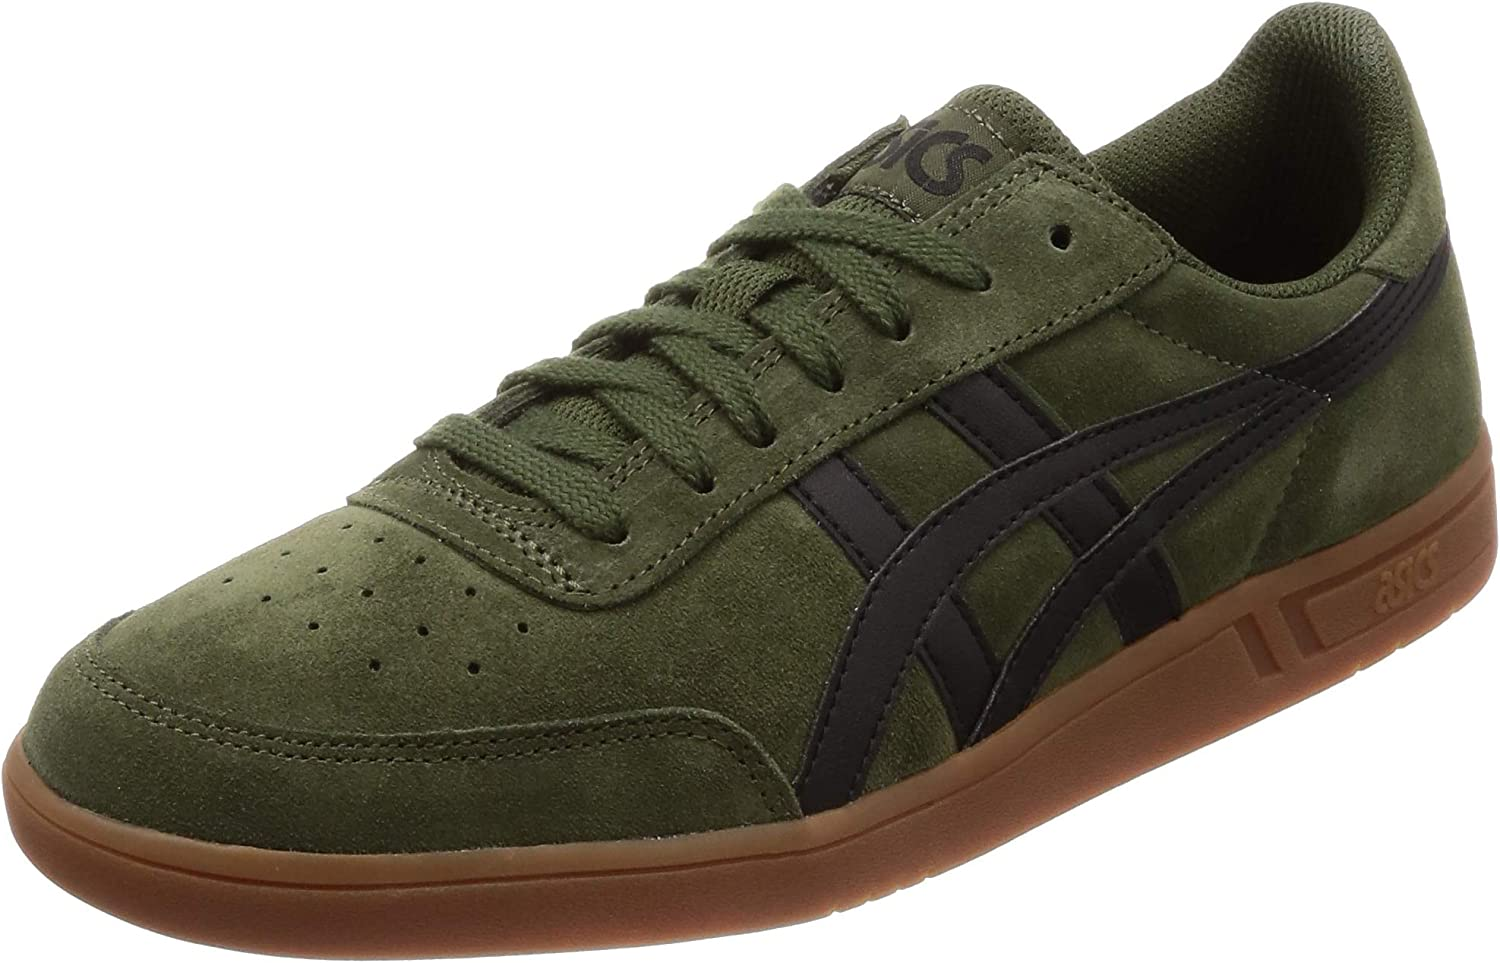 ASICS Men's Gel-Vickka TRS H847l-300 Low-Top Sneakers